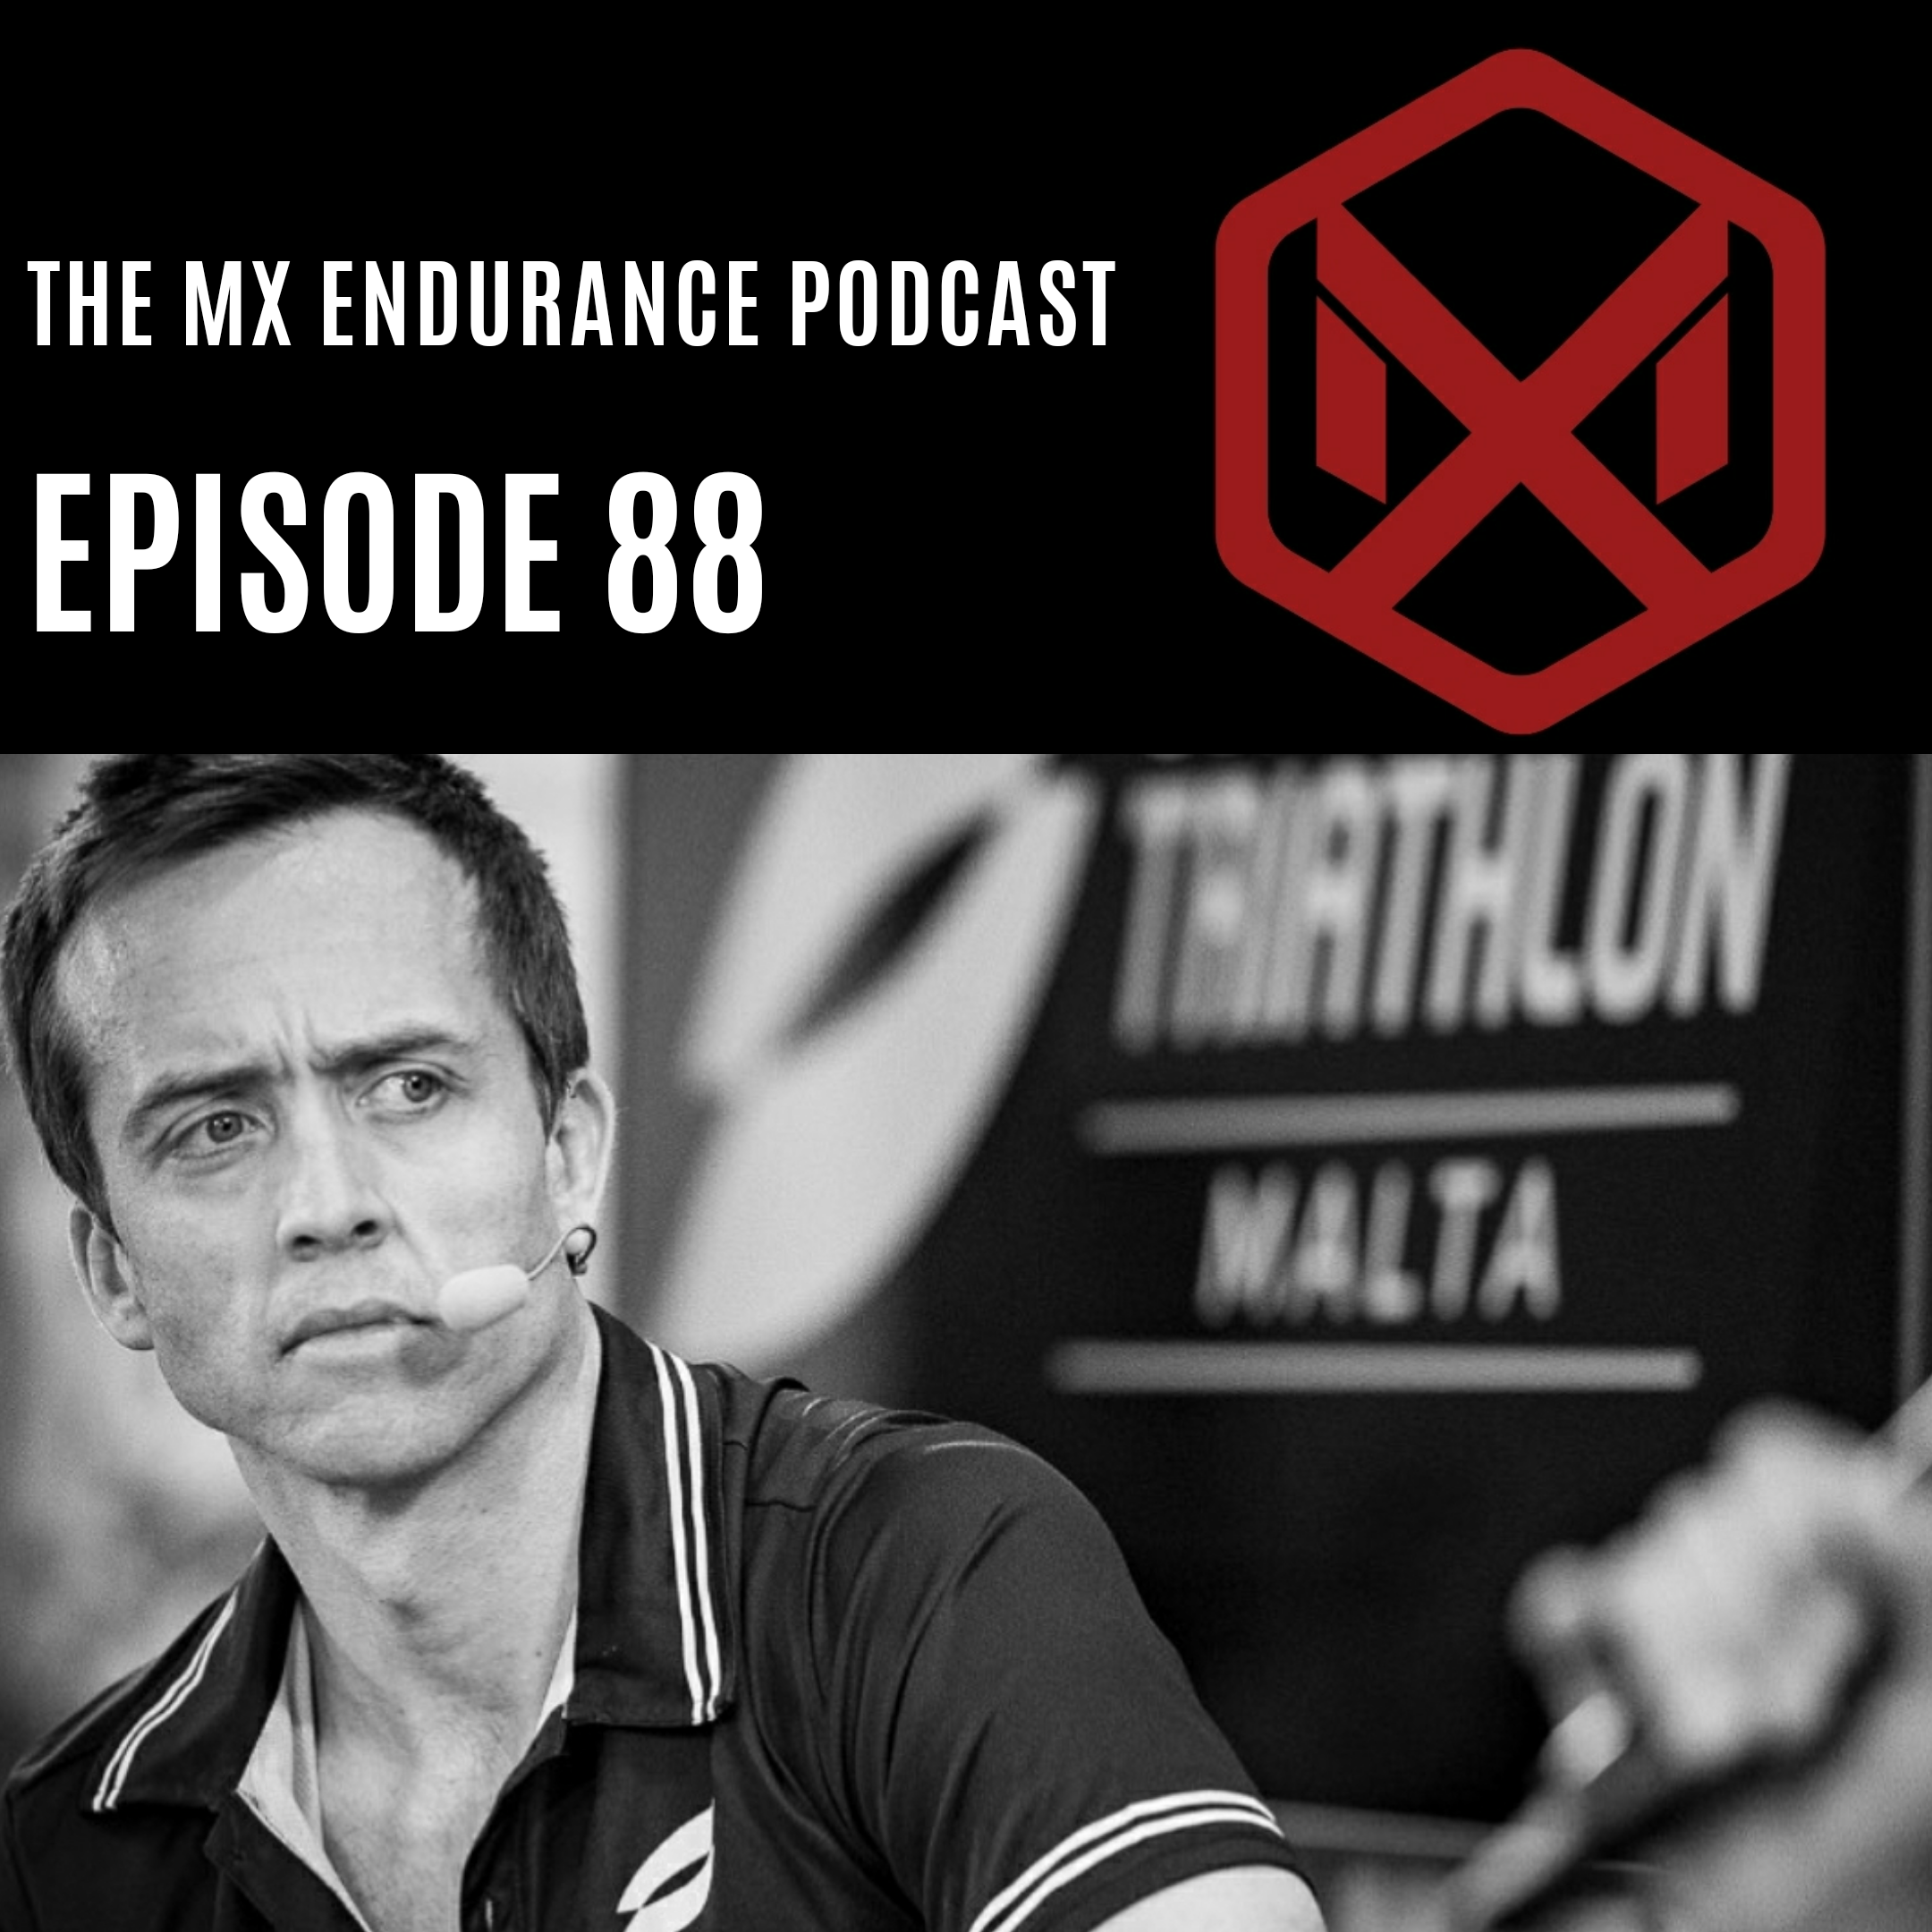 #88 - We Talk Triathlon with Super League Commentator Will McCloy